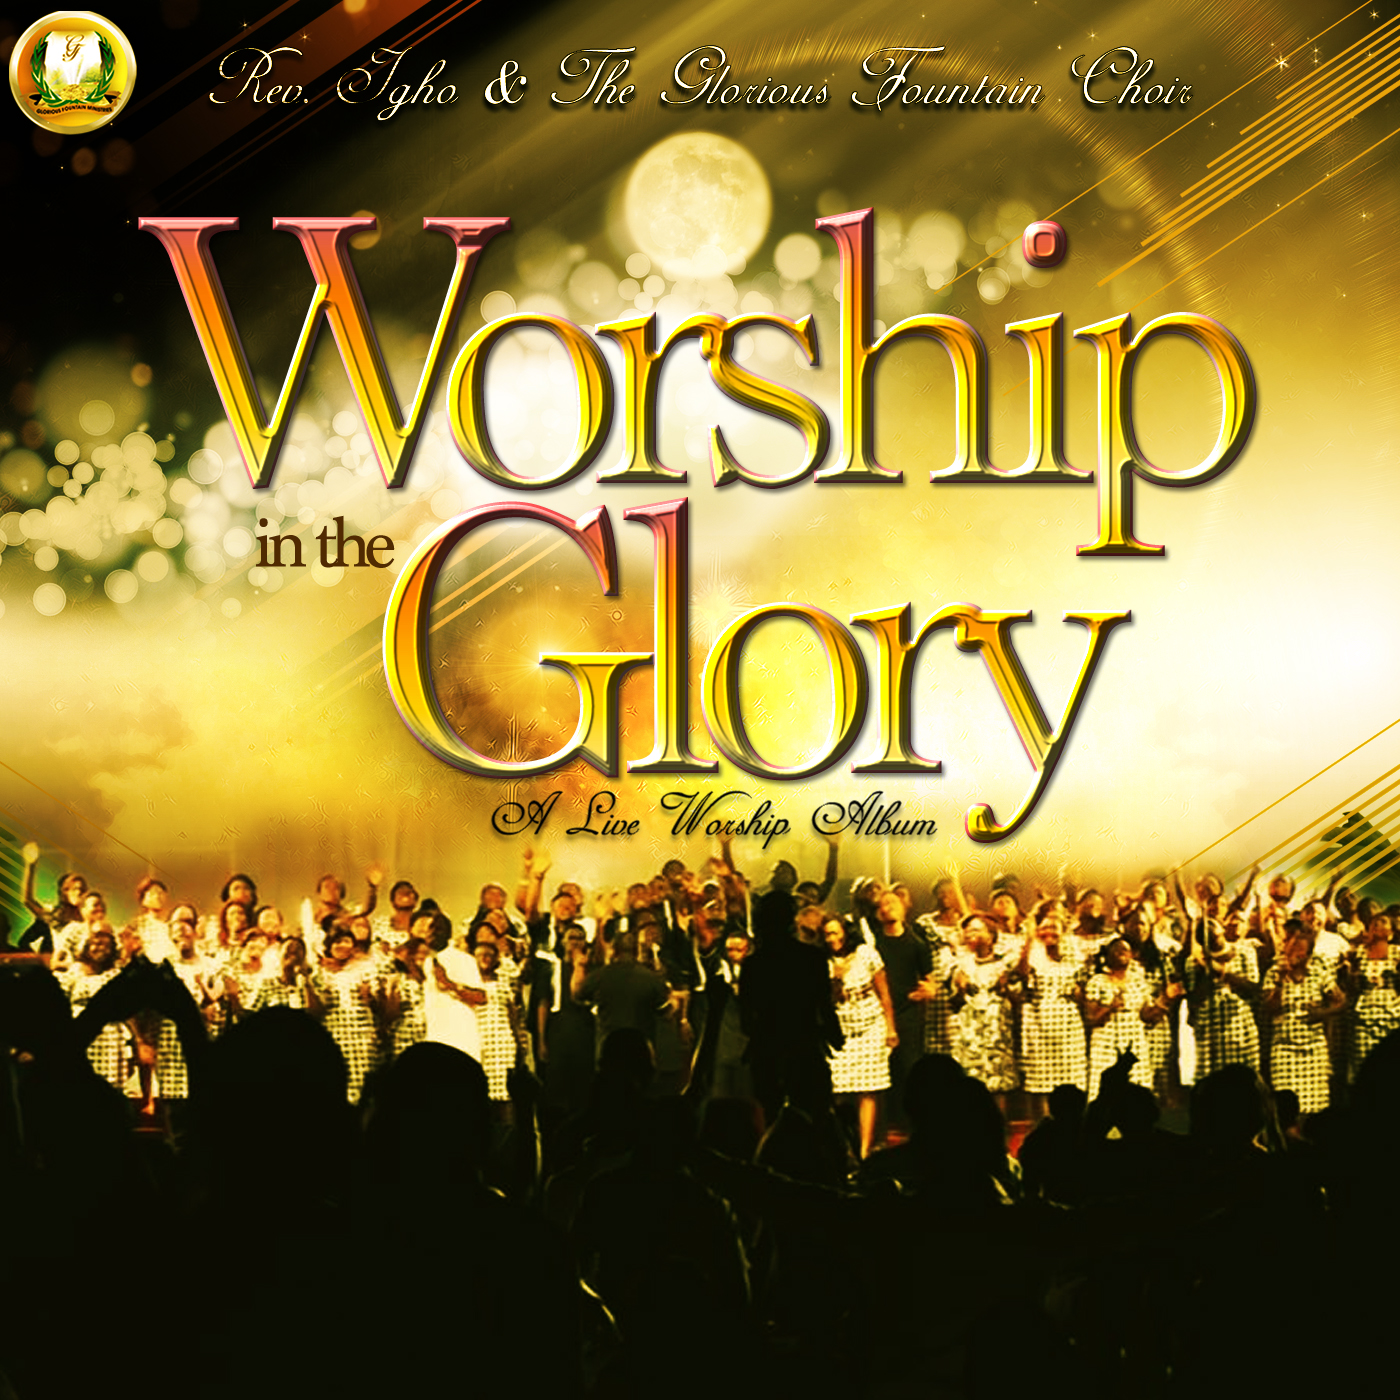 SONGS & VIDEOS BY PASTOR IGHO AND THE GLORIOUS FOUNTAIN